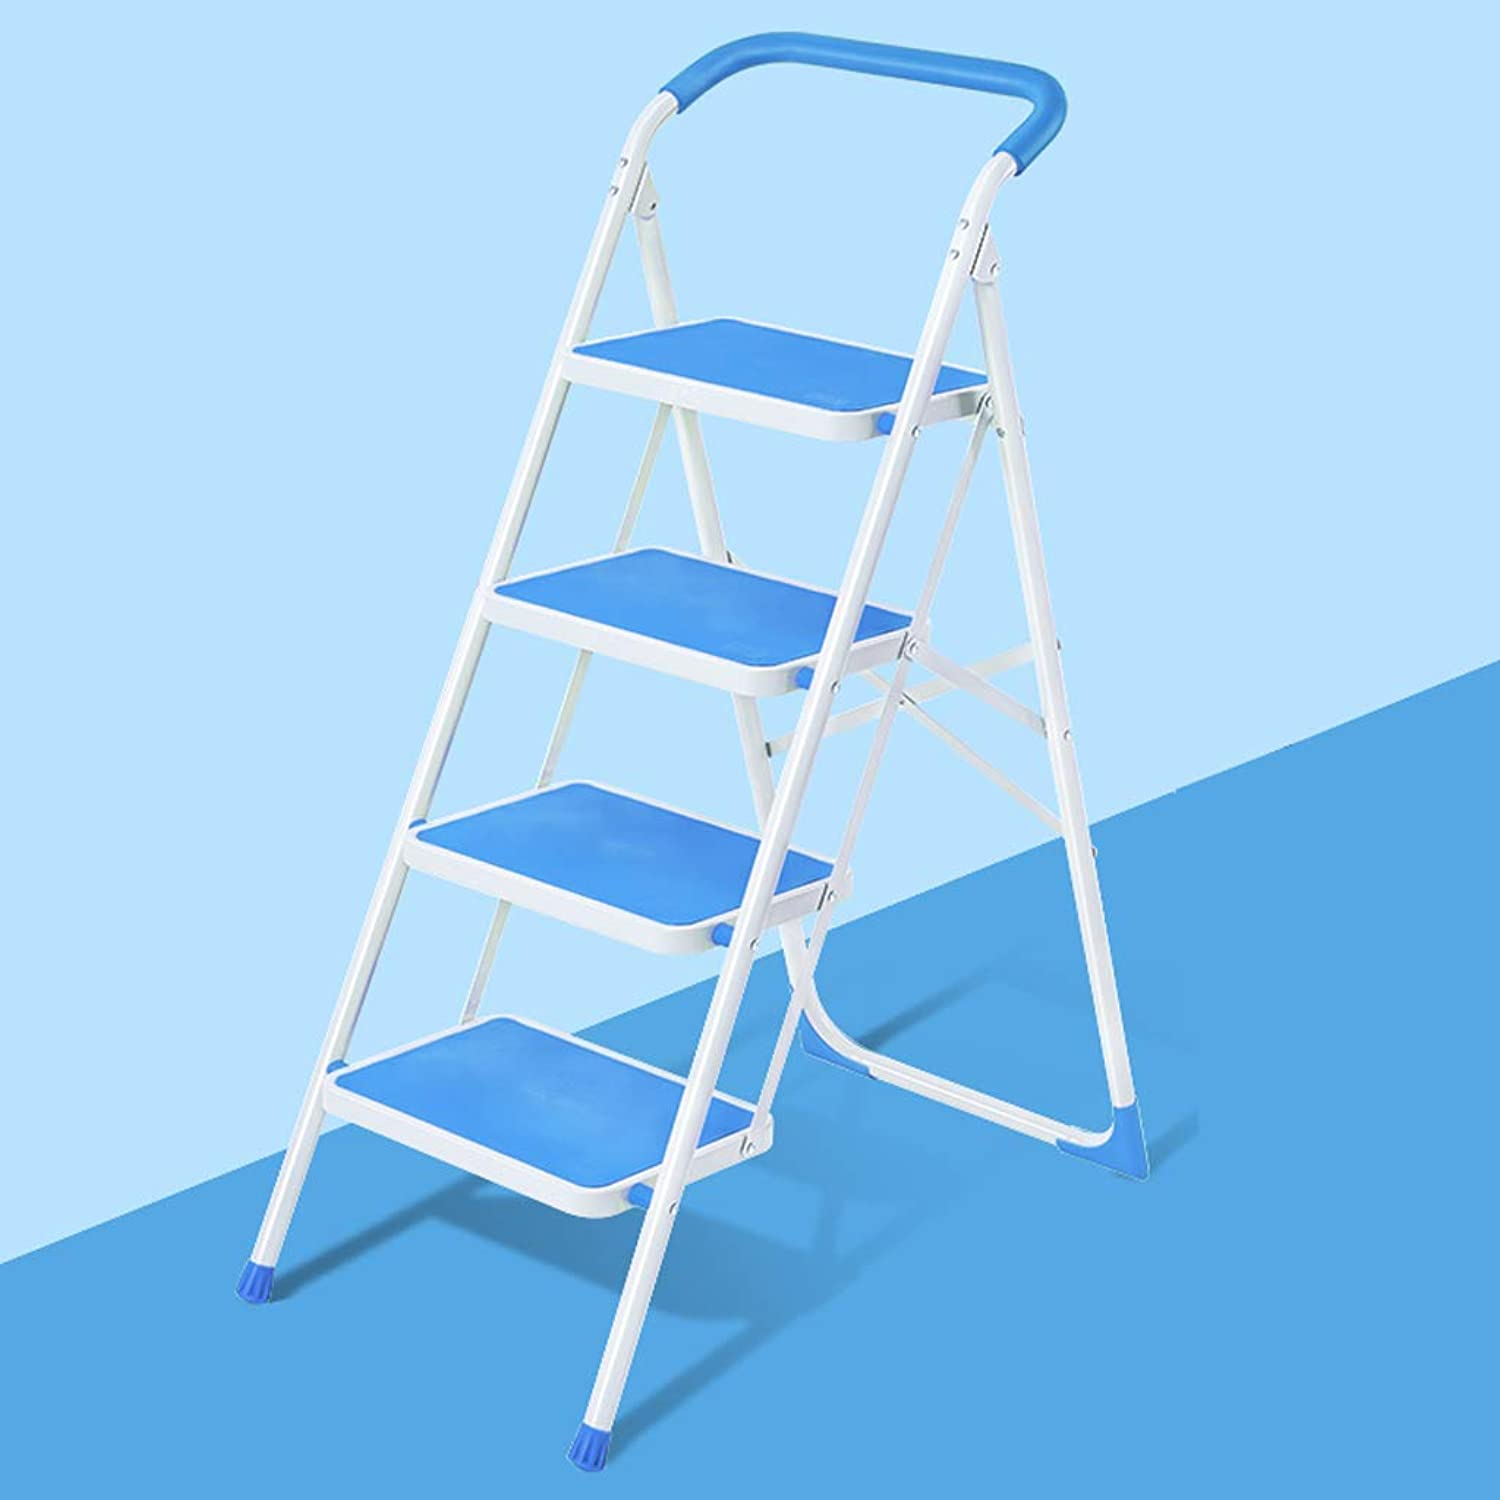 GLJJQMY Staircase Staircase Four-Story Folding Stool Stair Chair Suitable for Kitchen Bedroom Indoor Multi-Function Household Shrinking Ladder 49x84x126CM (color   bluee)